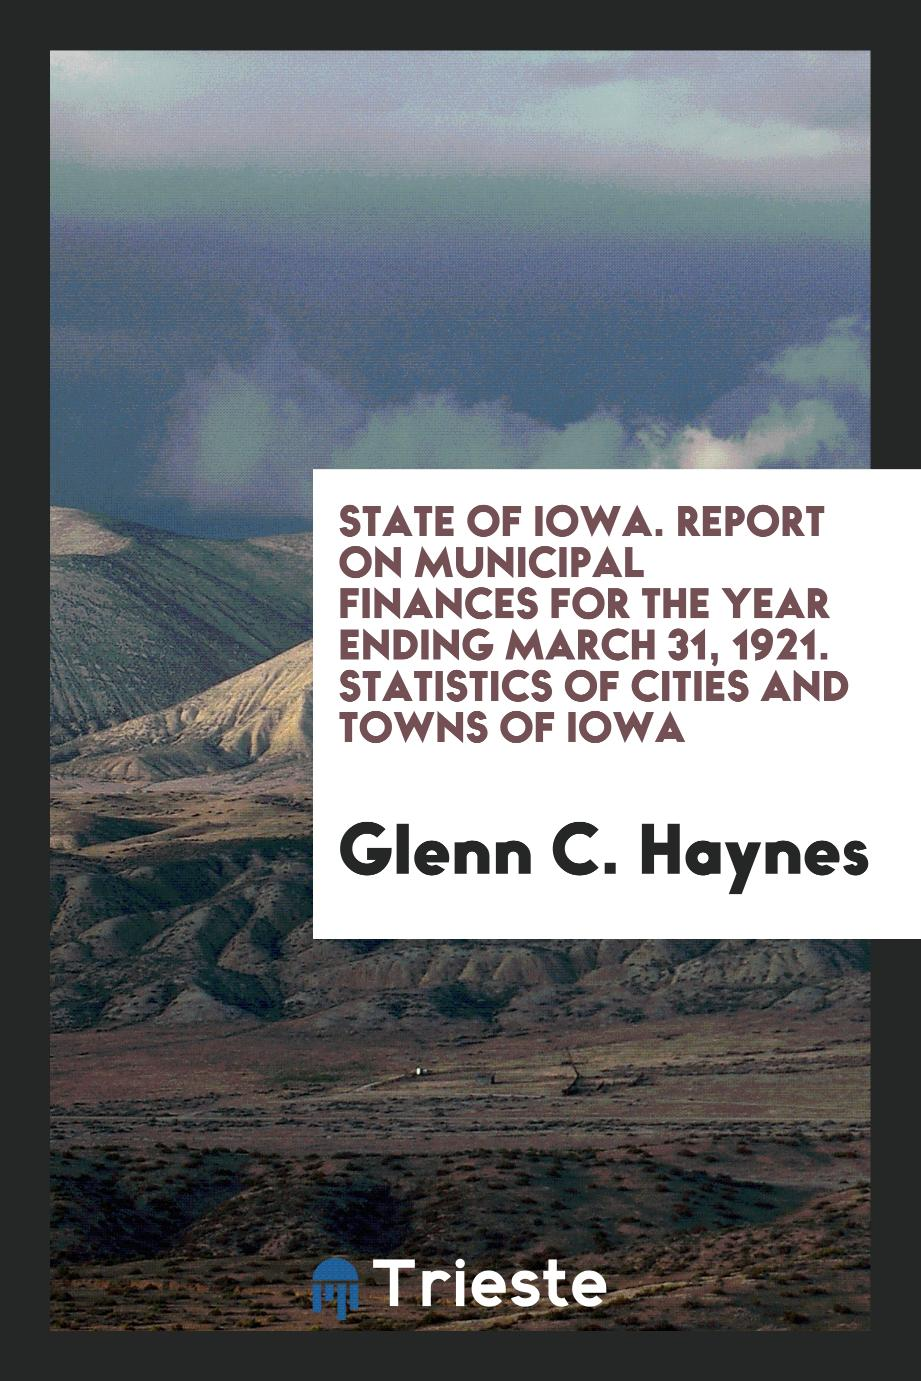 State of Iowa. Report on Municipal Finances for the Year Ending March 31, 1921. Statistics of Cities and Towns of Iowa